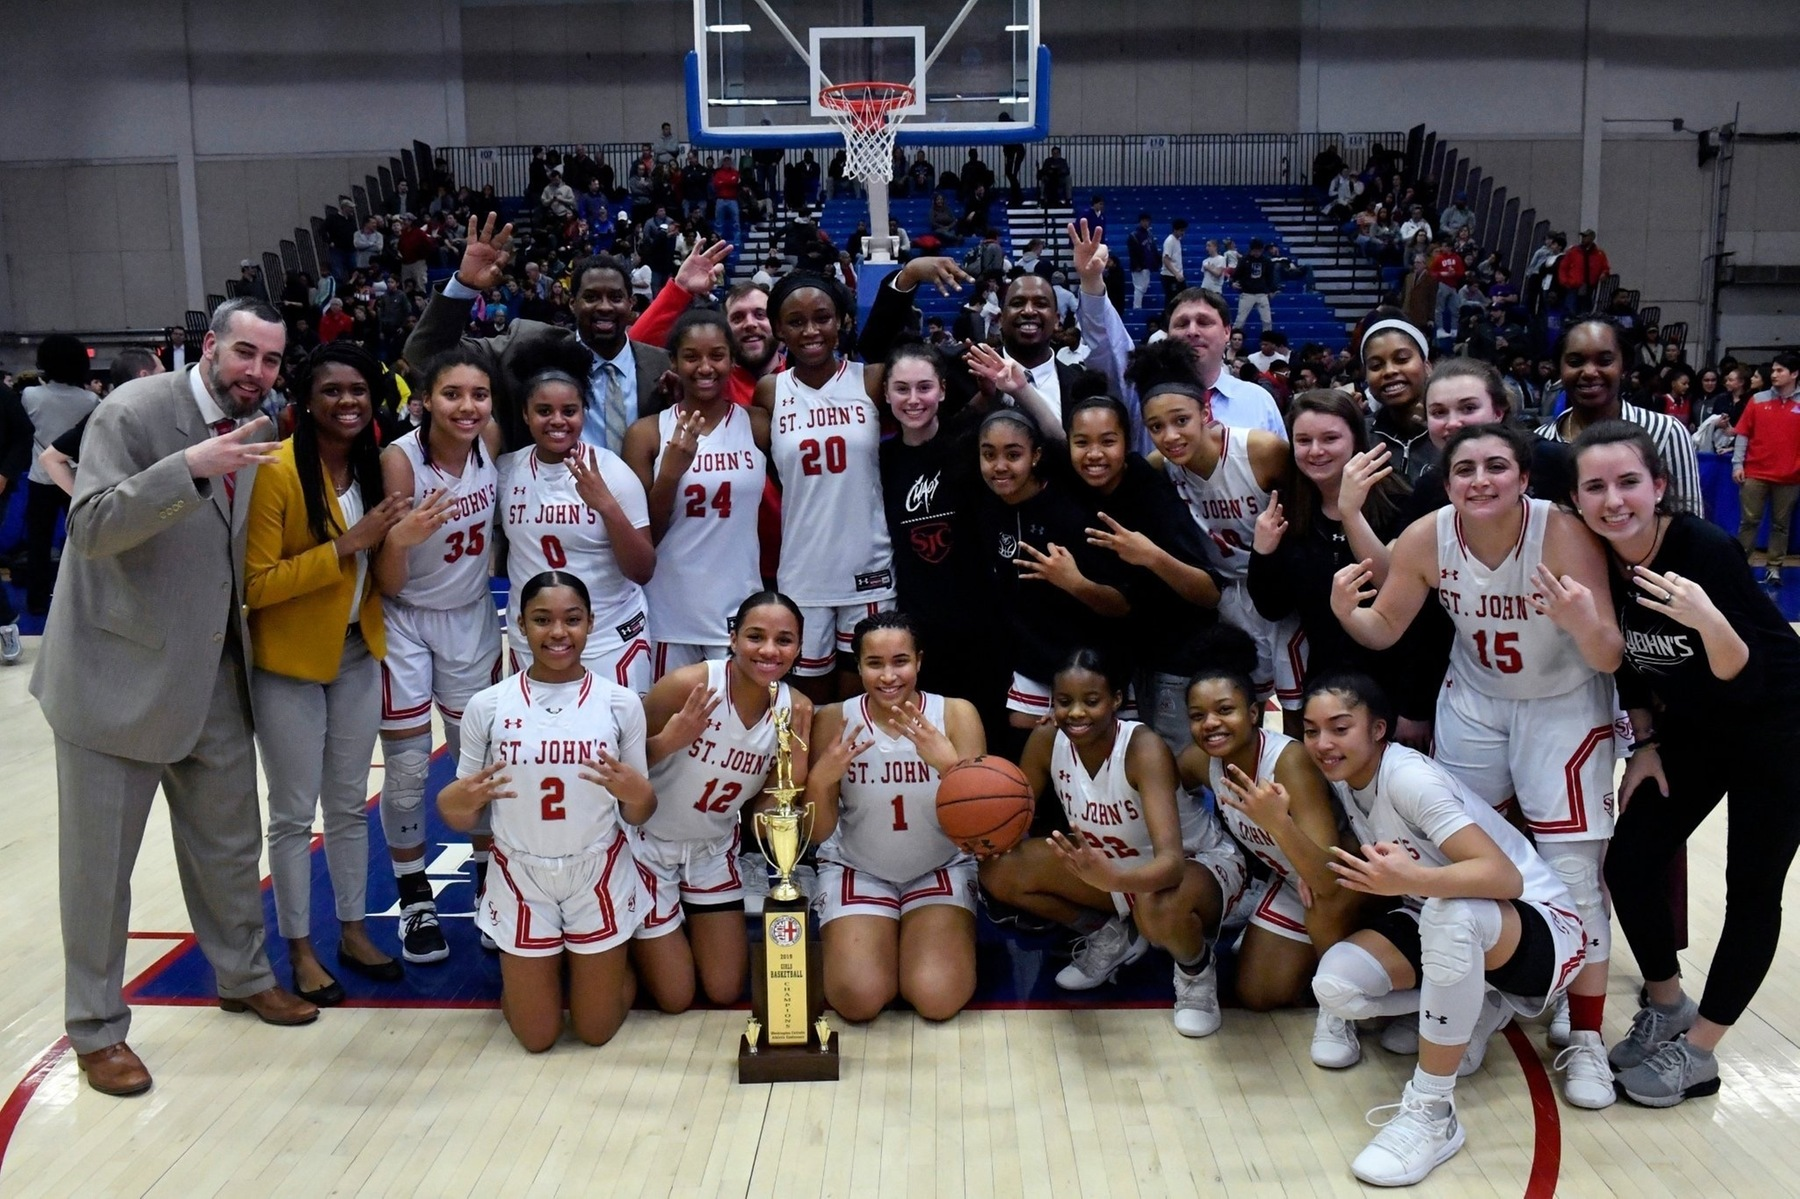 St. John's outduels McNamara again to win third straight WCAC girls' basketball title